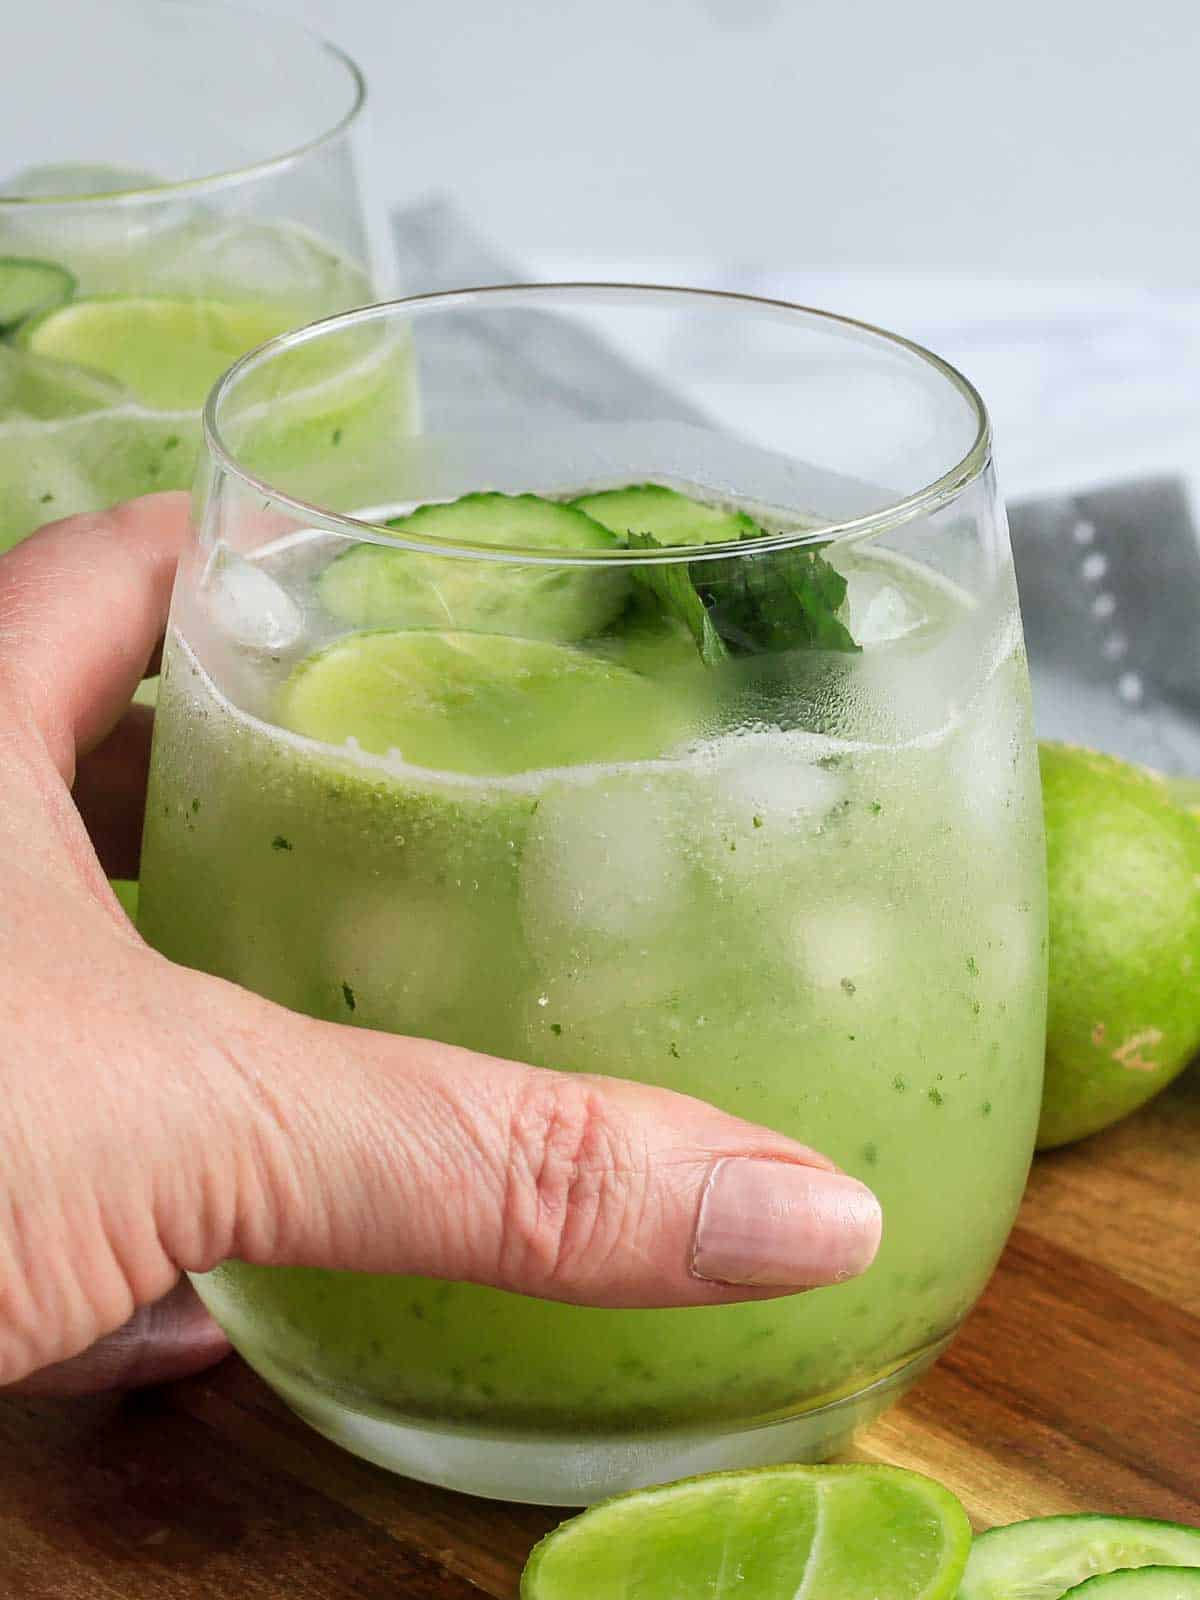 Hand reaching for a glass of cucumber spritzer